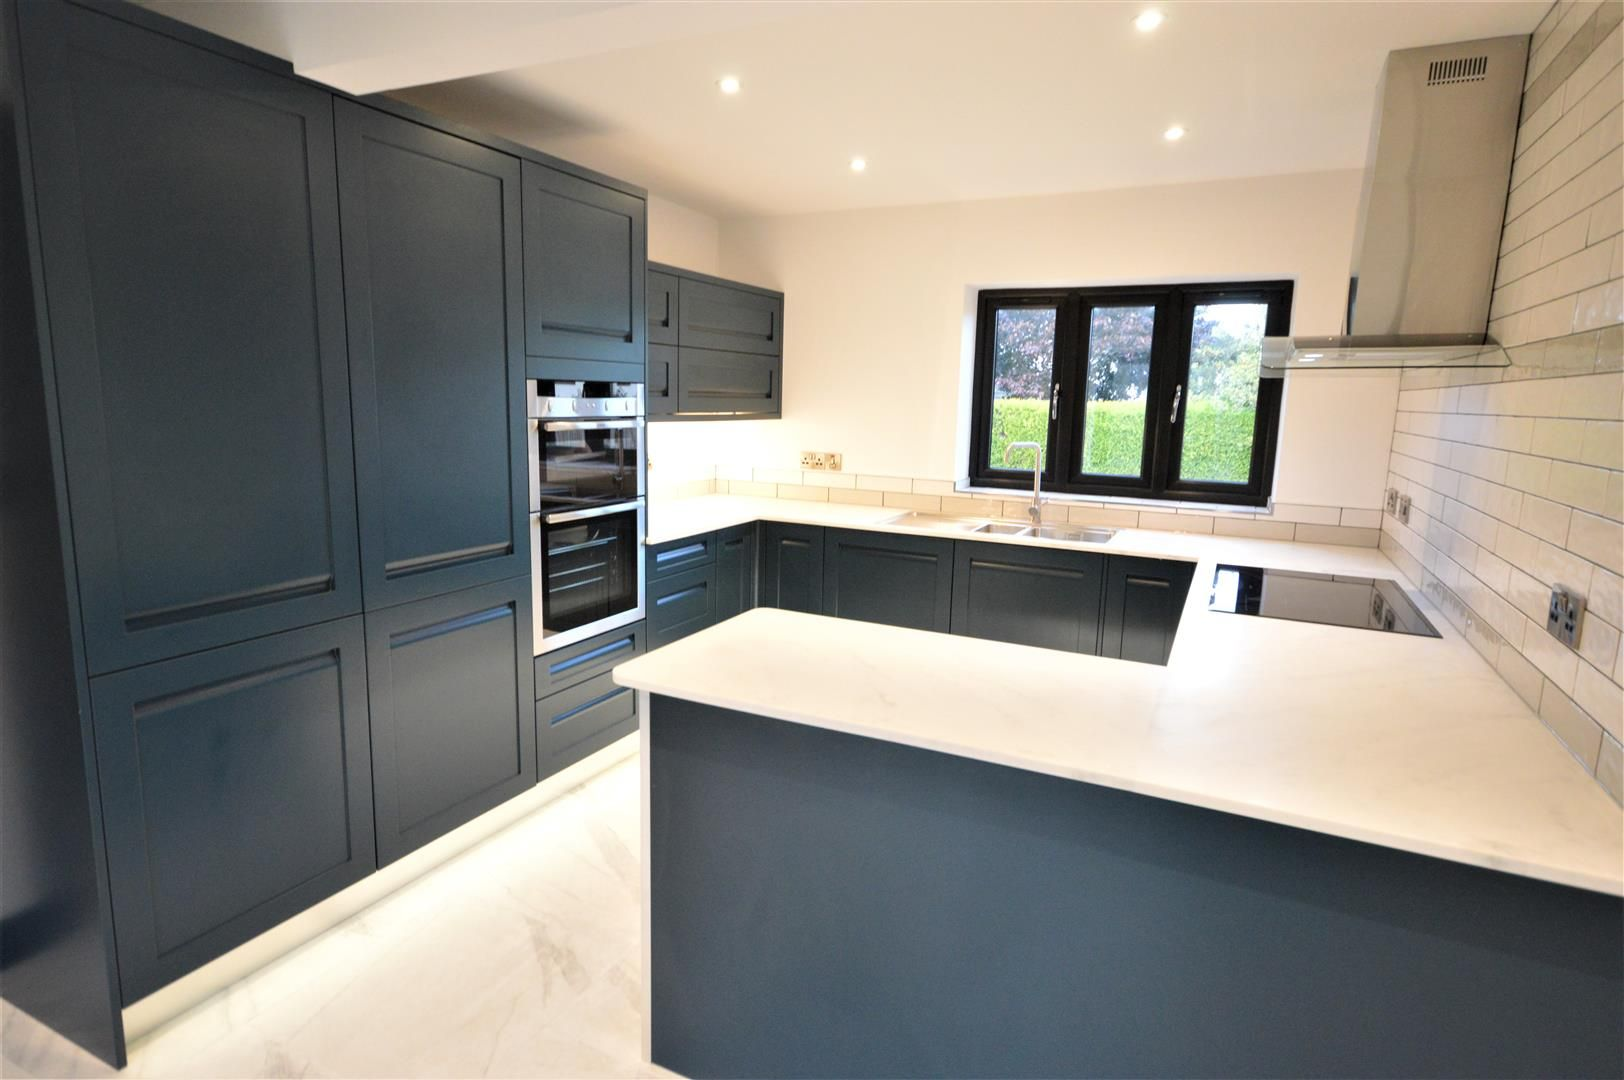 4 bed detached for sale in Brimfield  - Property Image 3